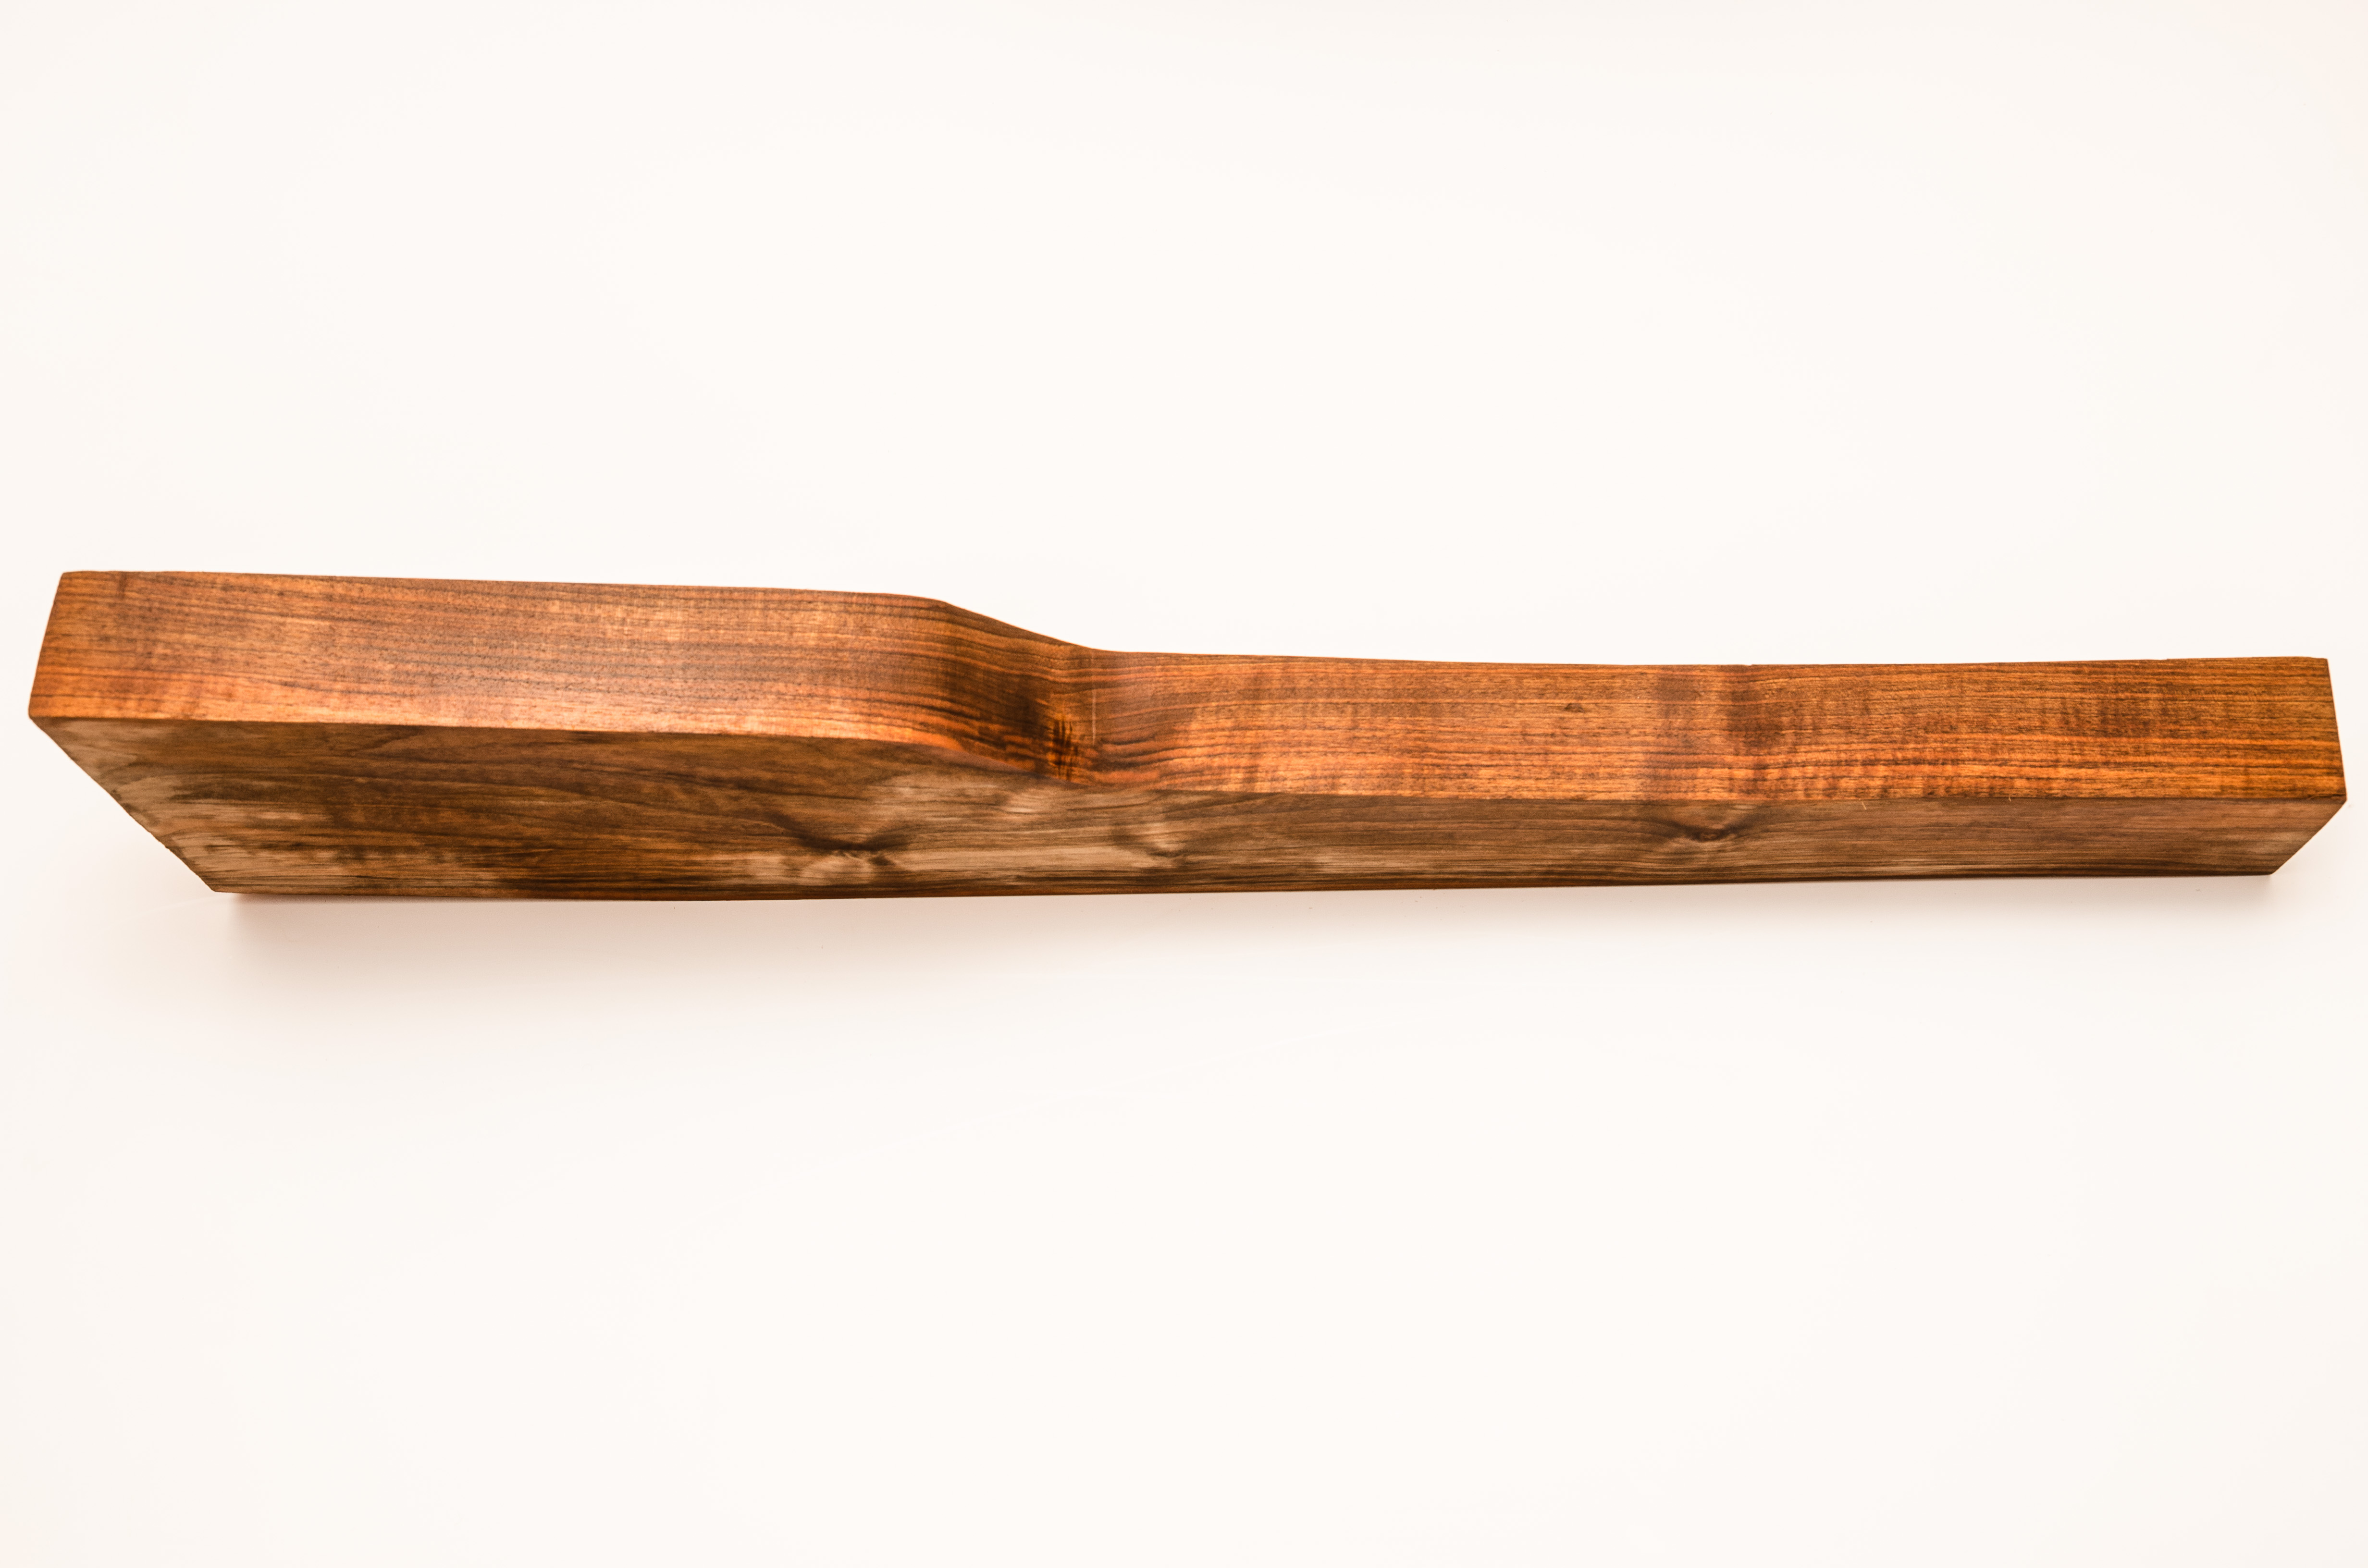 walnut_stock_blanks_for_guns_and_rifles-1629